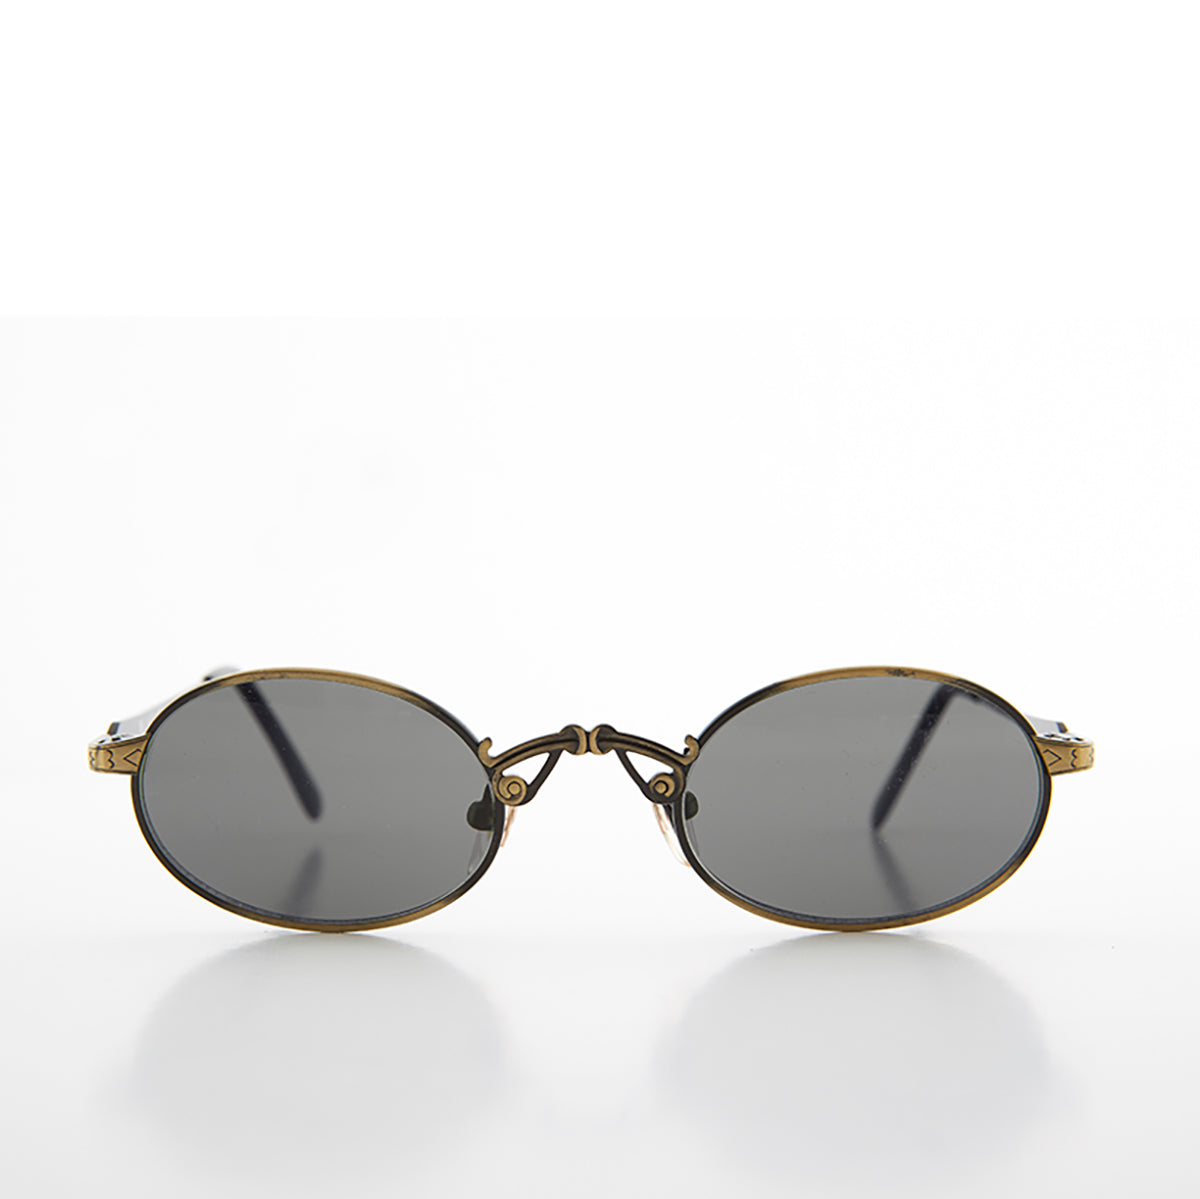 Small Oval Half-Eye Victorian Steampunk Metal Sunglass